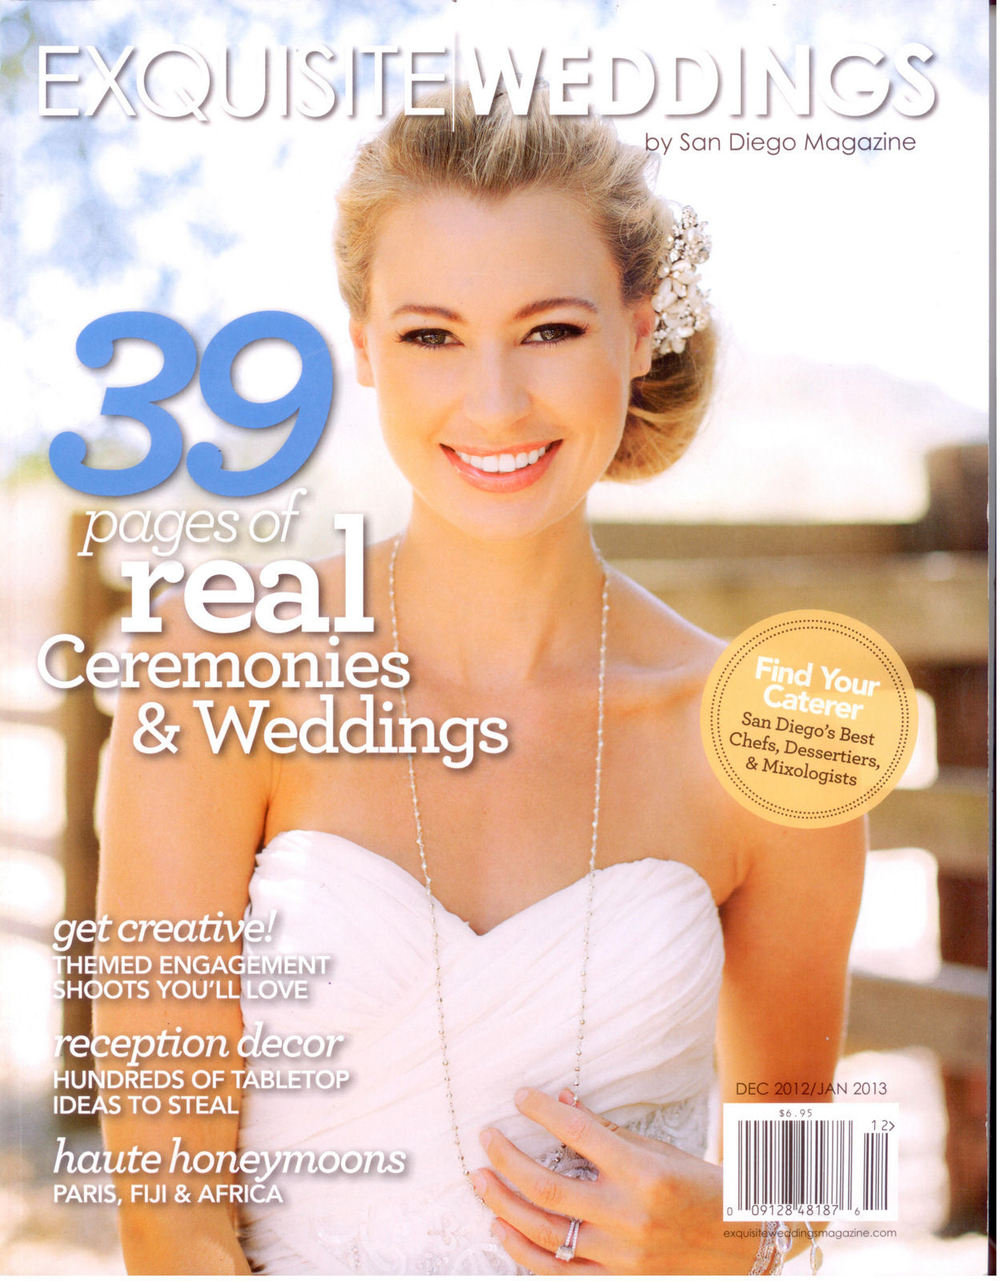 Exquisite Weddings Cover - Dec Jan 2012.jpg